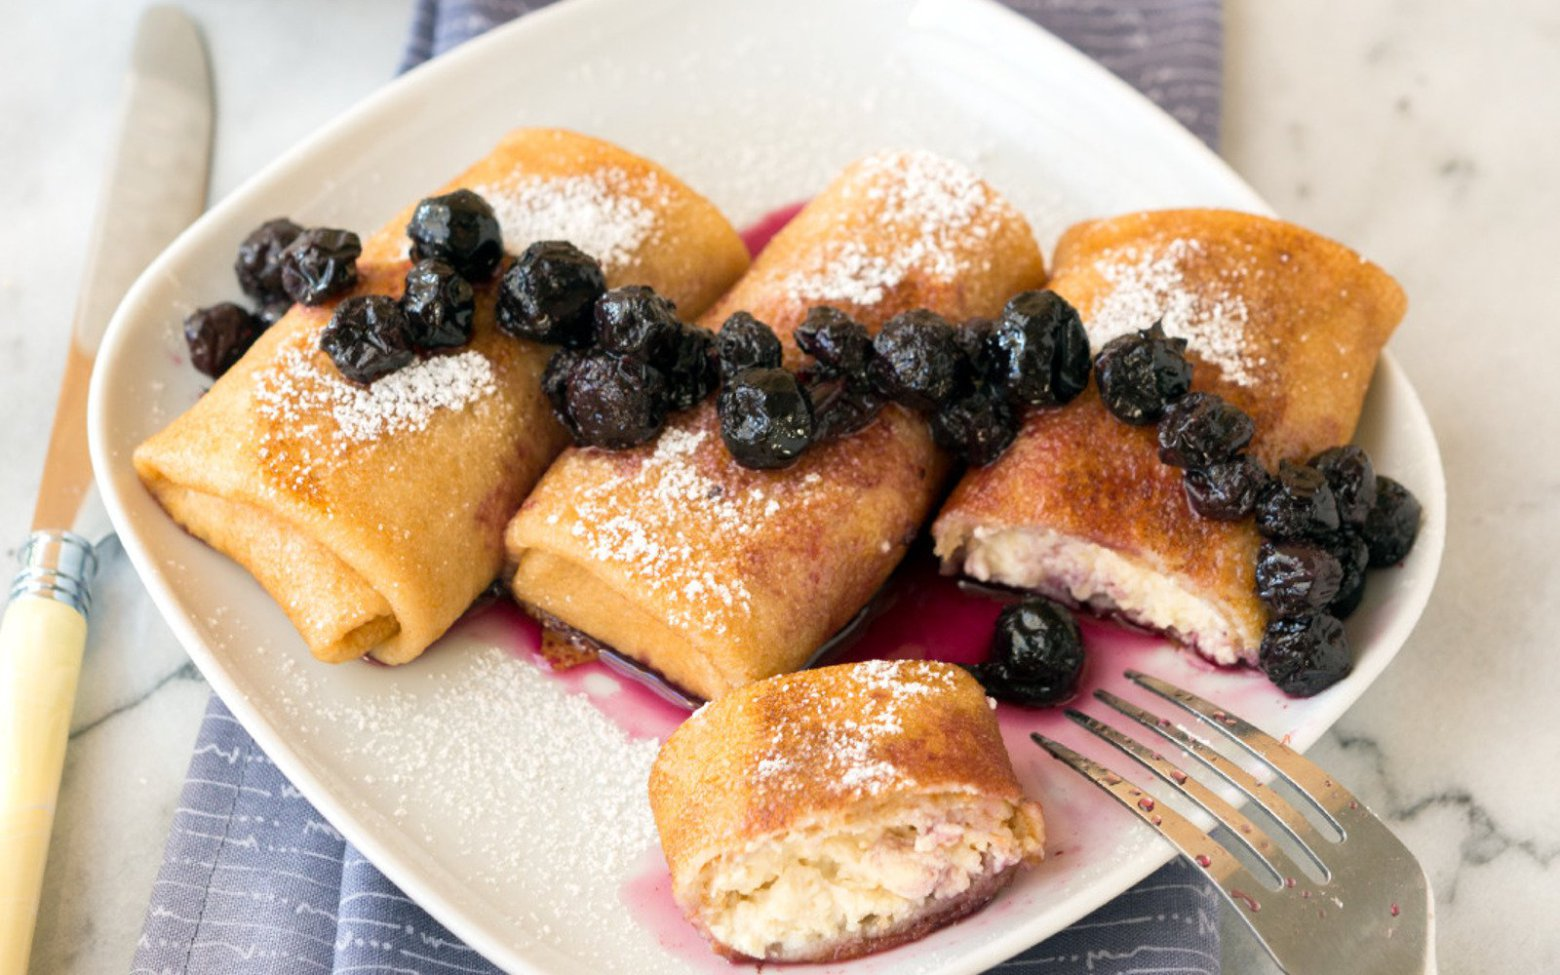 Vegan Nut-Free Cream Cheese Blintzes With Blueberry Drizzle